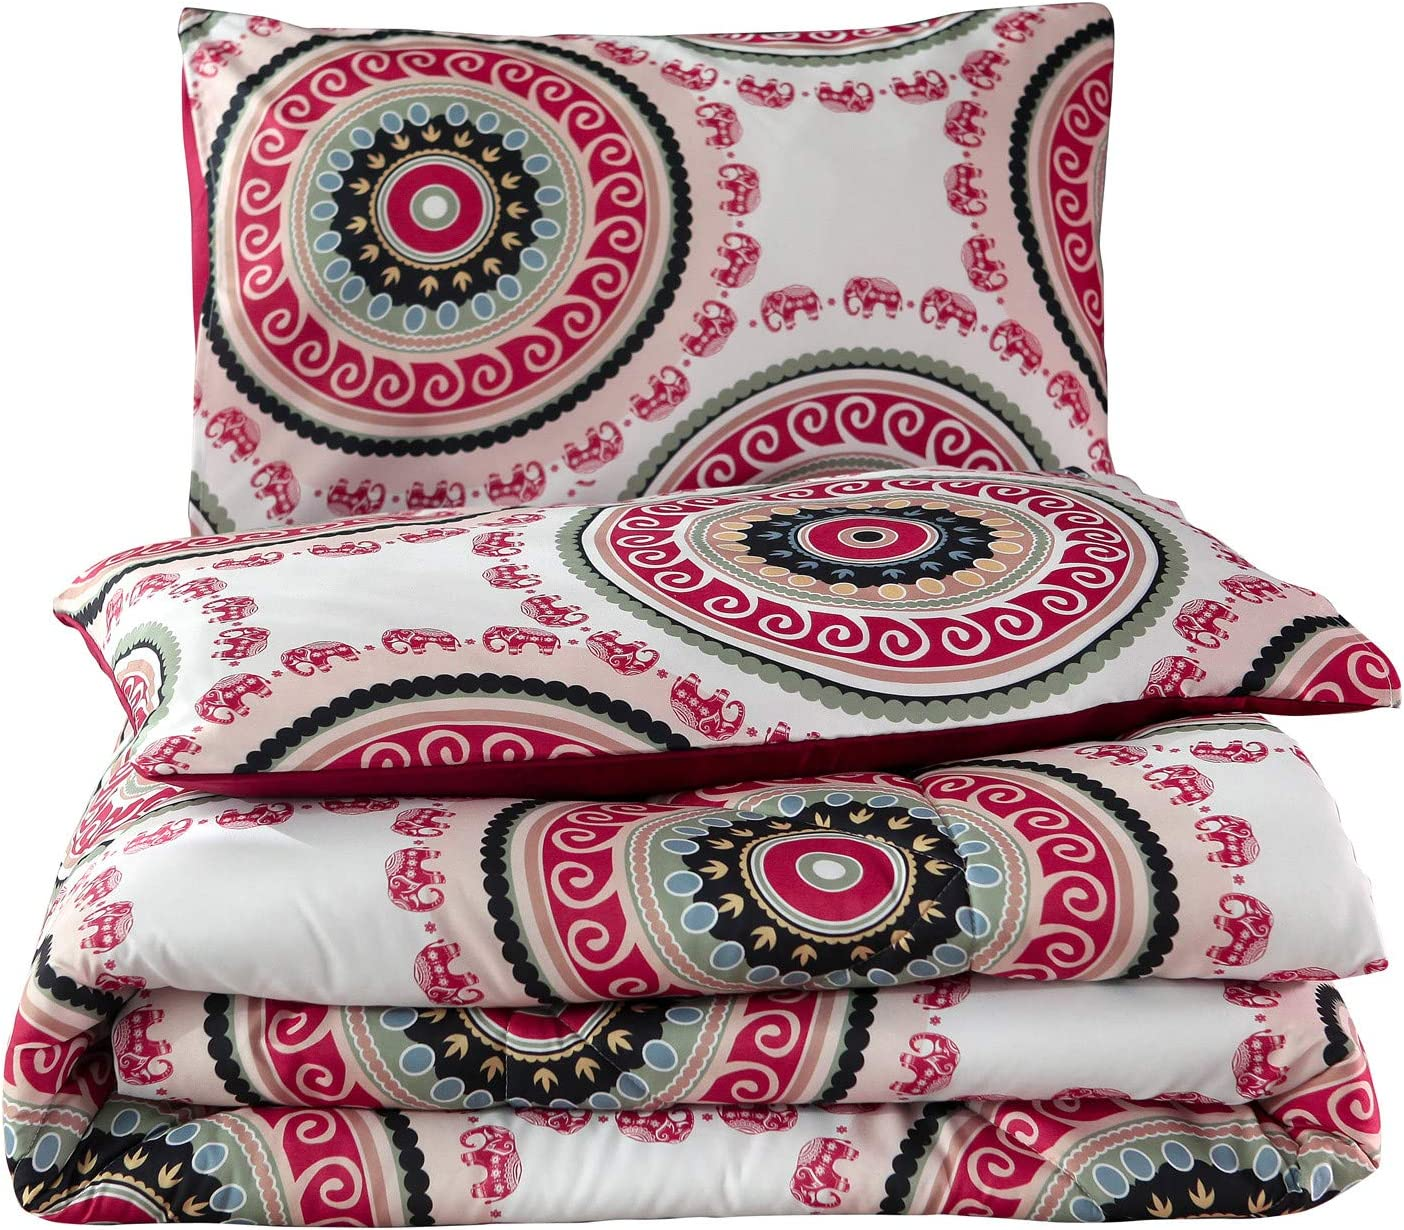 Meeting Story 3Pcs Microfiber Mandala Chic Boho Bohemian Sytle Circles Elephant Pattern Bedding Comforter Bedspread Quilt Sets (Red, Queen)